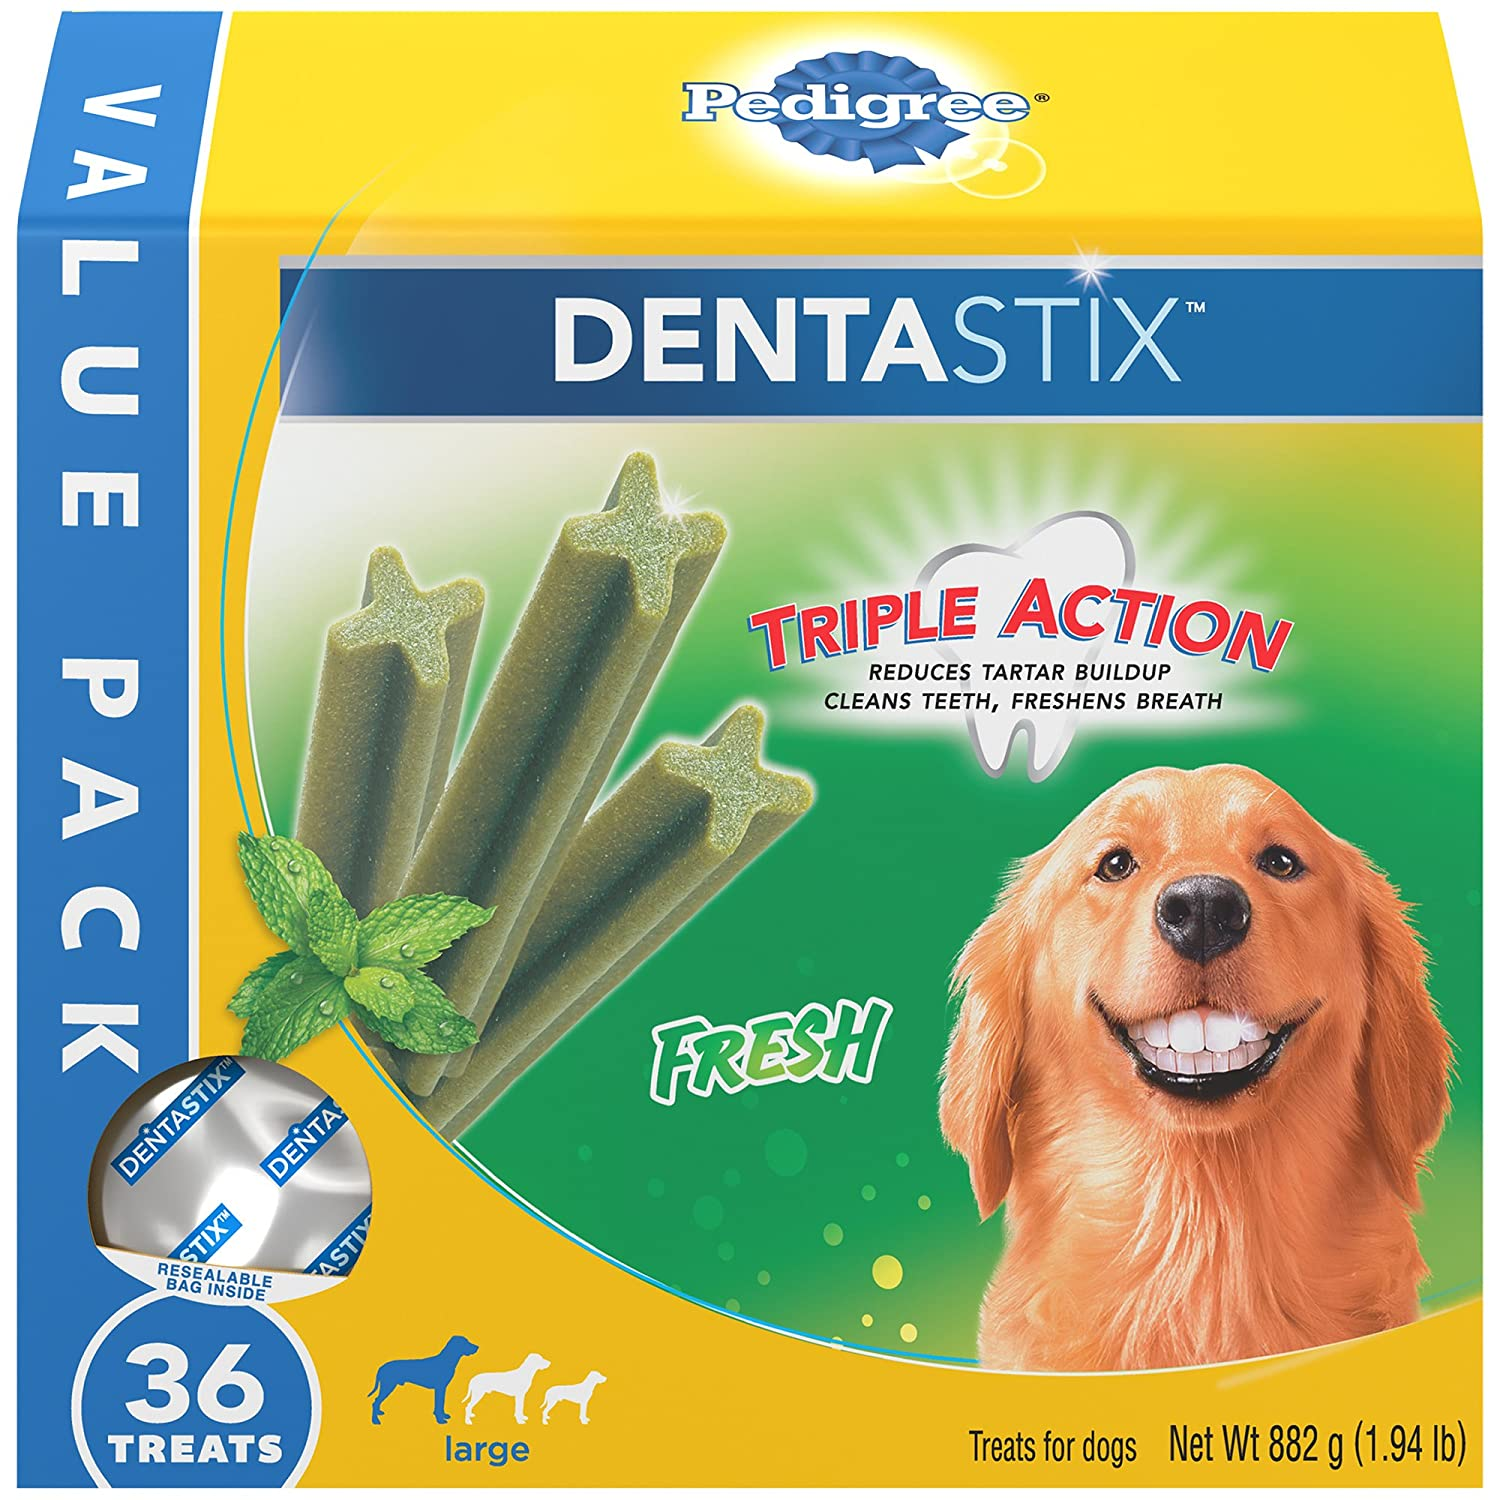 1.94 lbs. (Pack of 4) Pedigree DENTASTIX Fresh Large Treats for Dogs 1.94 Pounds 36 Treats (Pack of 4)